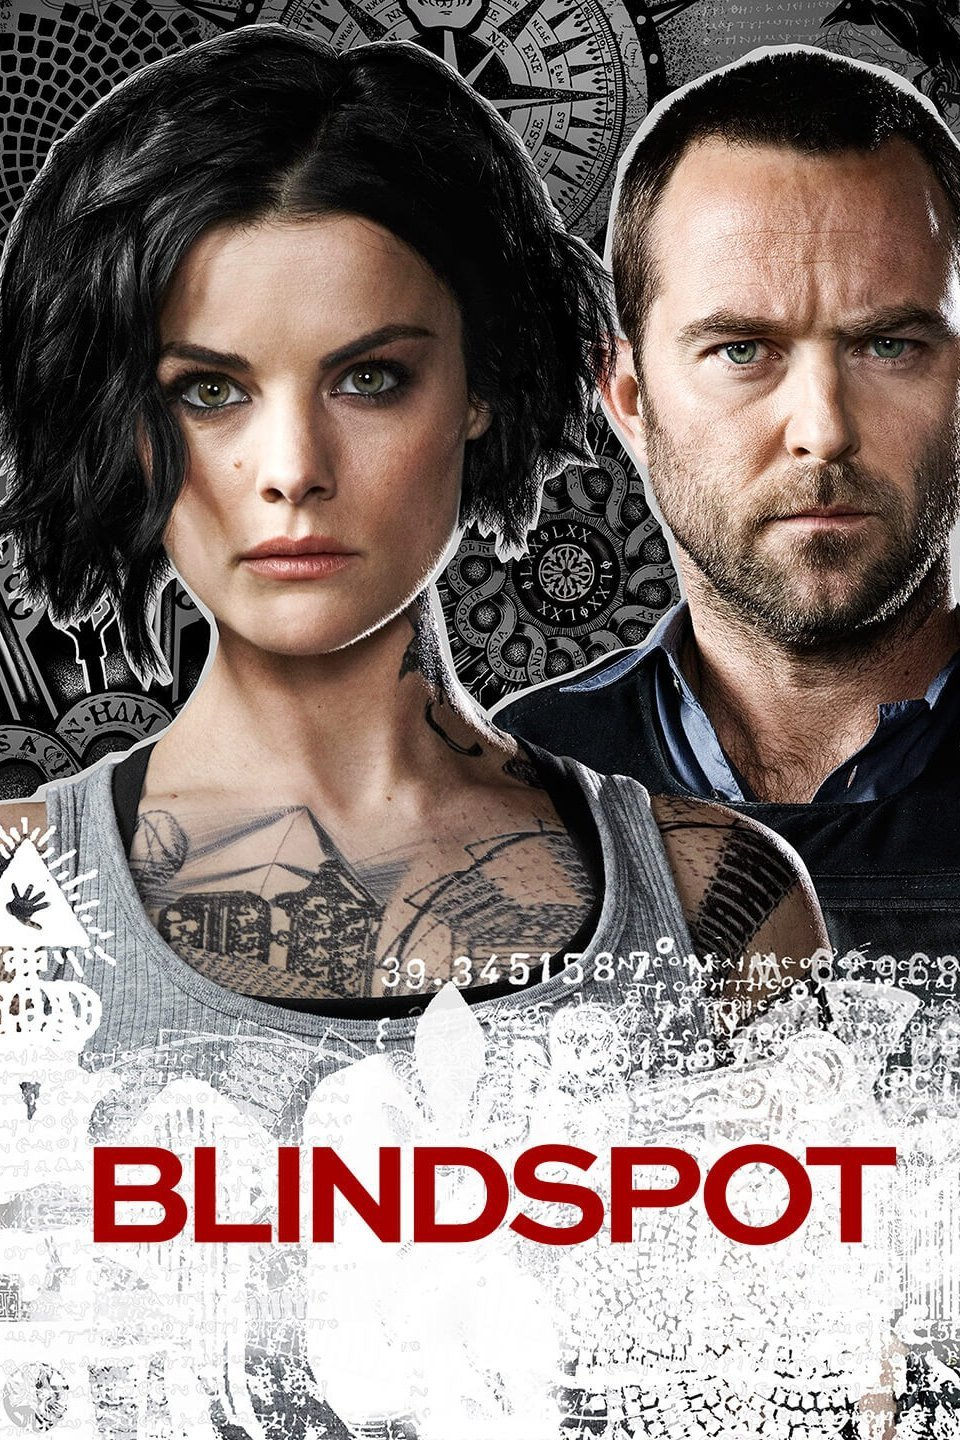 Blindspot Season 2 S02 720p 2CH BluRay x265 HEVC Complete